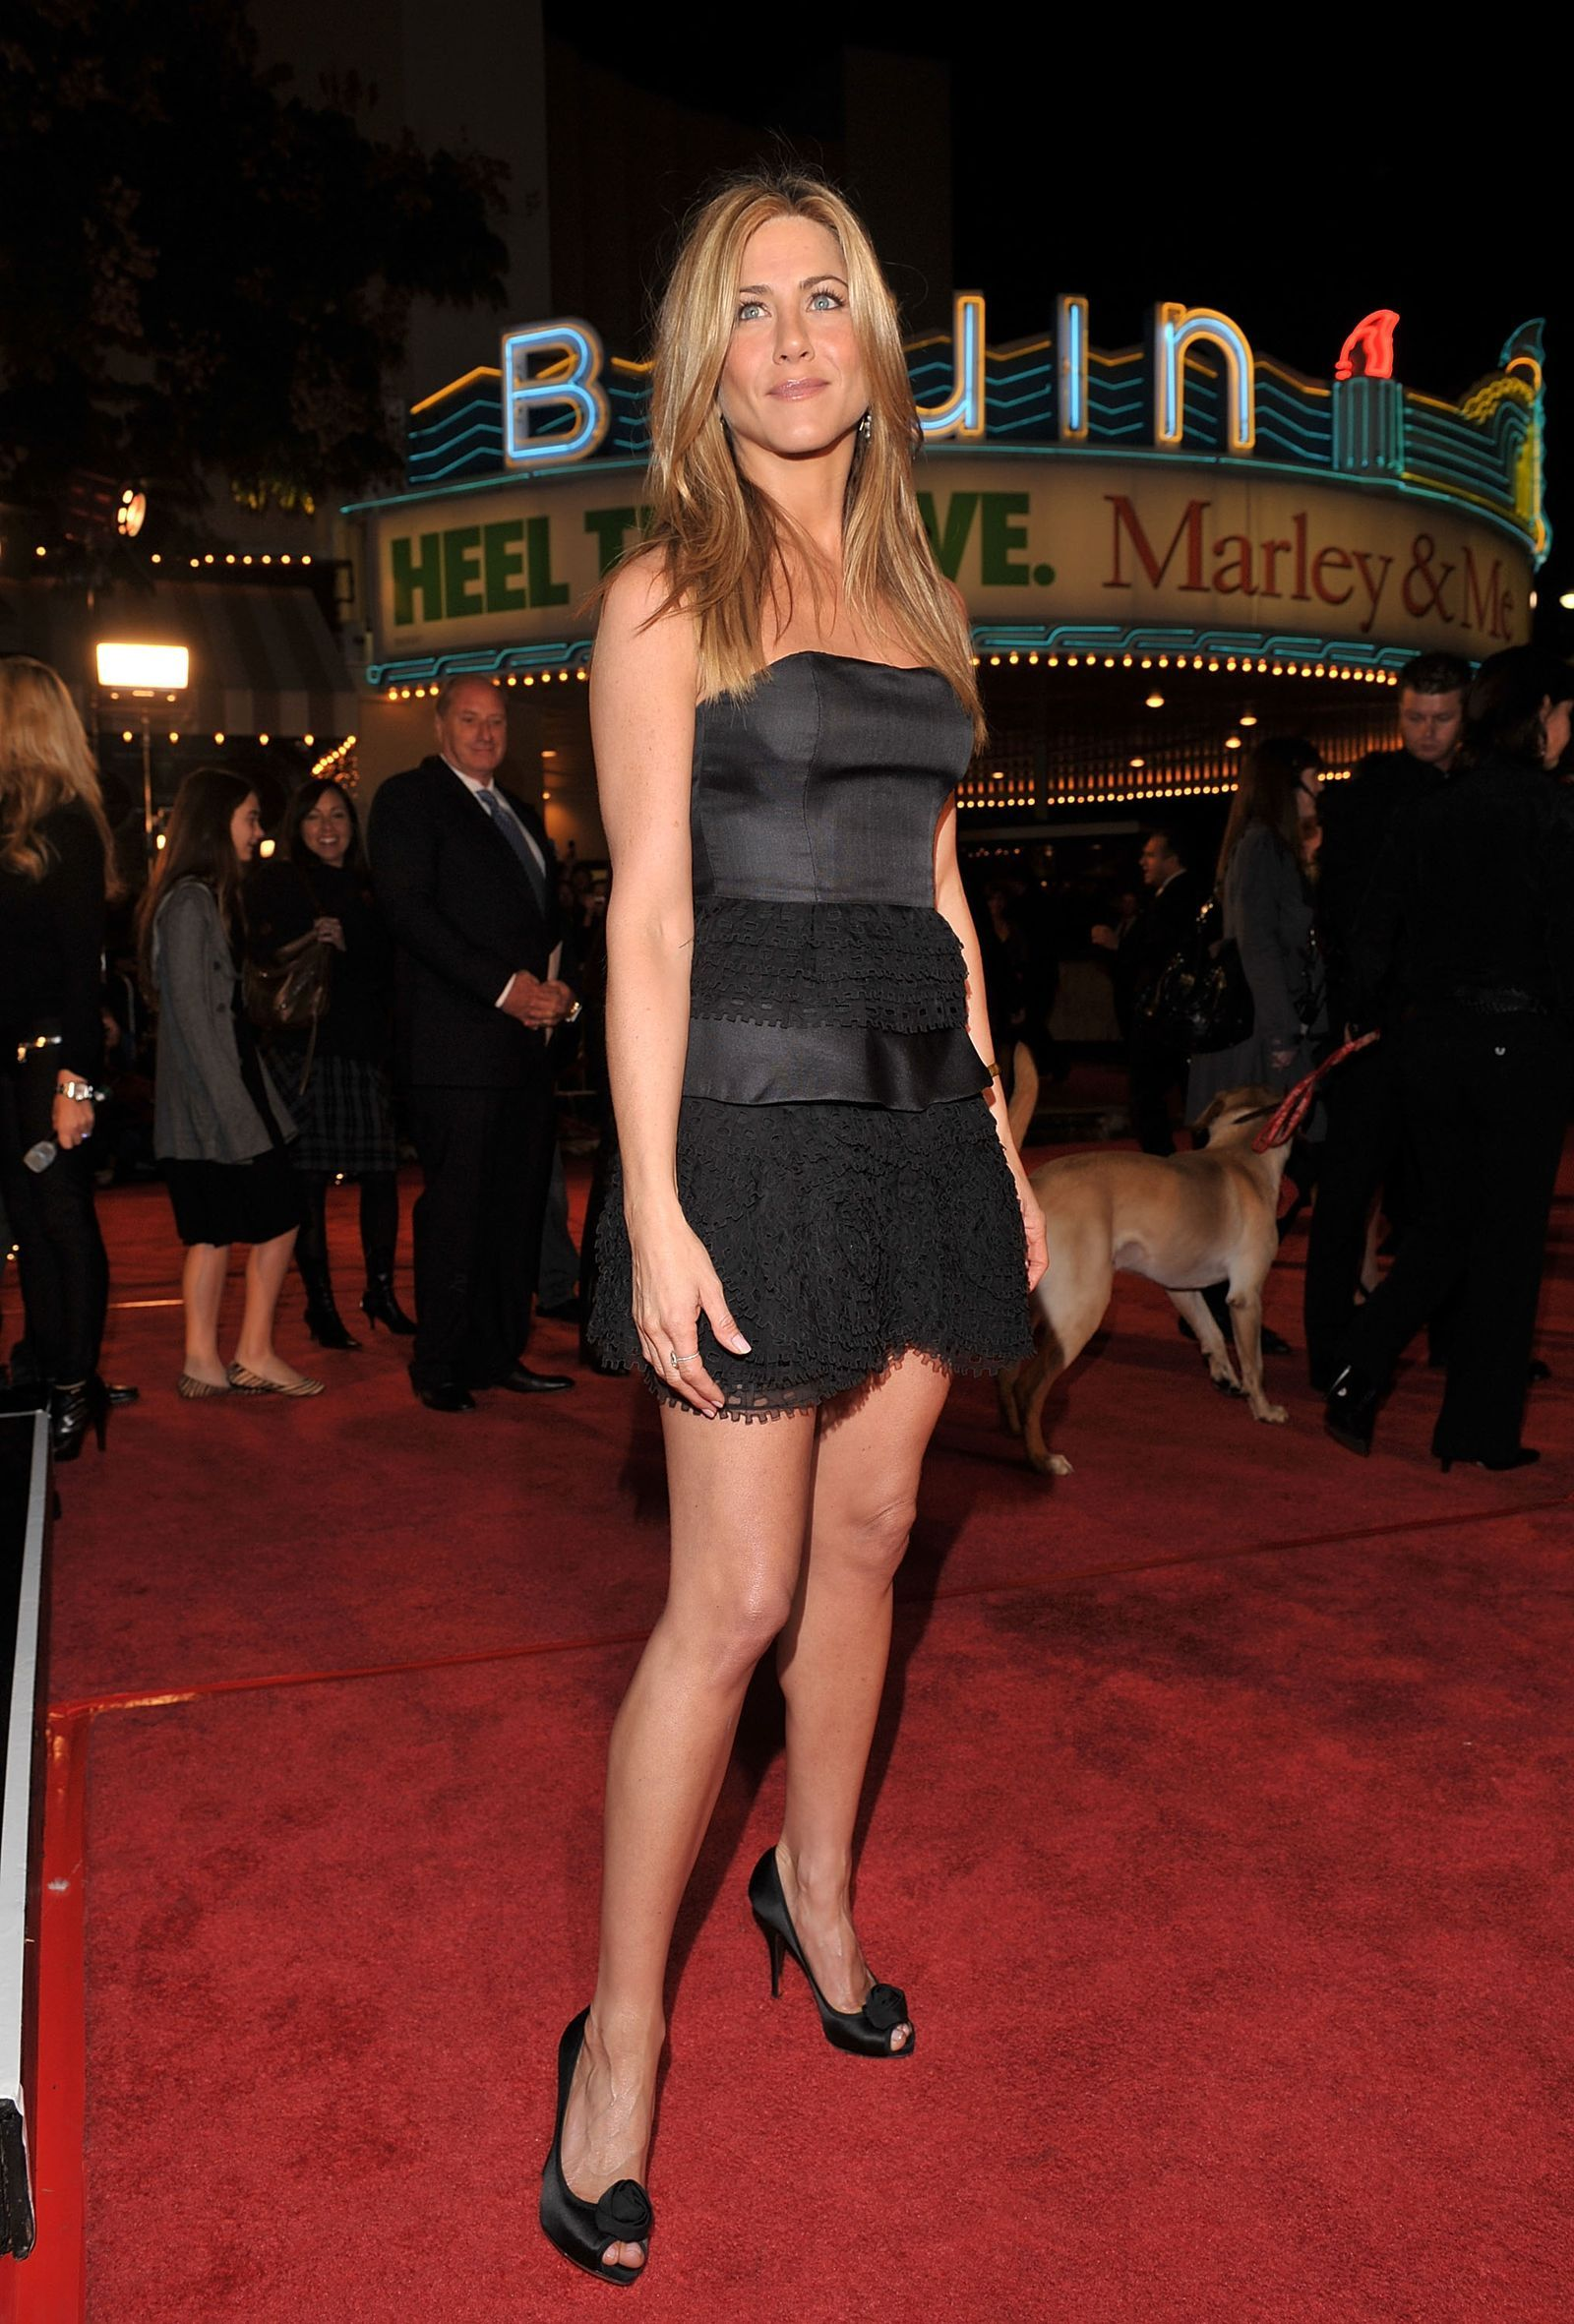 Jennifer Aniston S Best Outfits Of All Time Would Make Rachel Green Proud Jennifer Aniston Jennifer Aniston Style Cool Outfits [ 2362 x 1600 Pixel ]